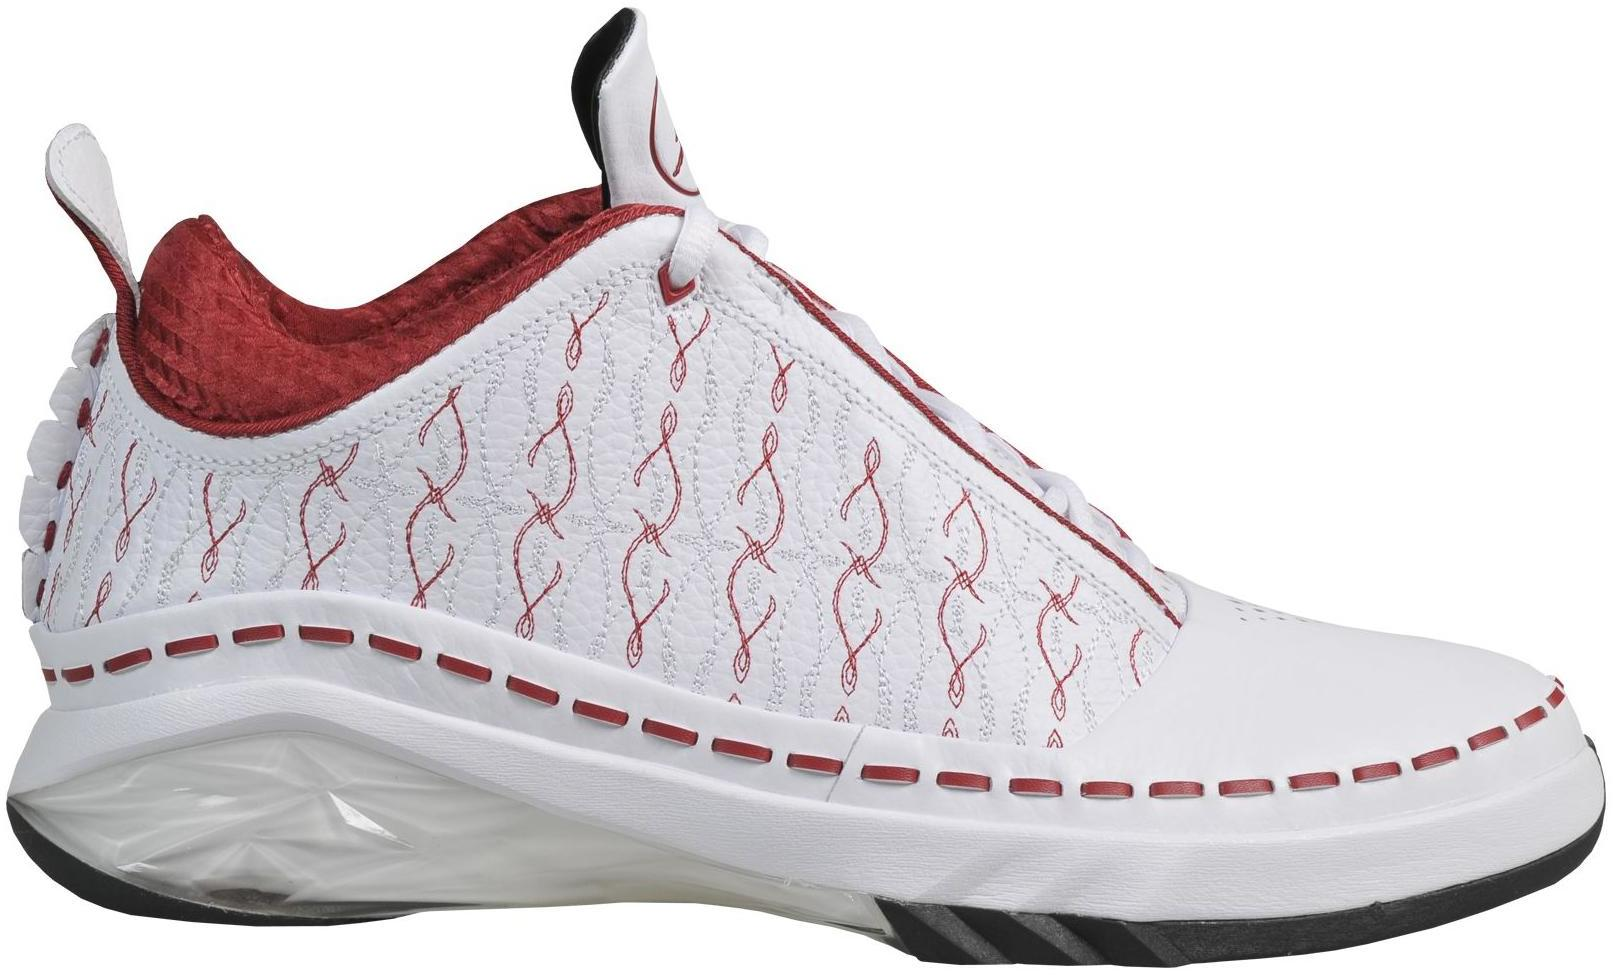 Air Jordan 23 Faible Fac Blanc Jordan Rouge